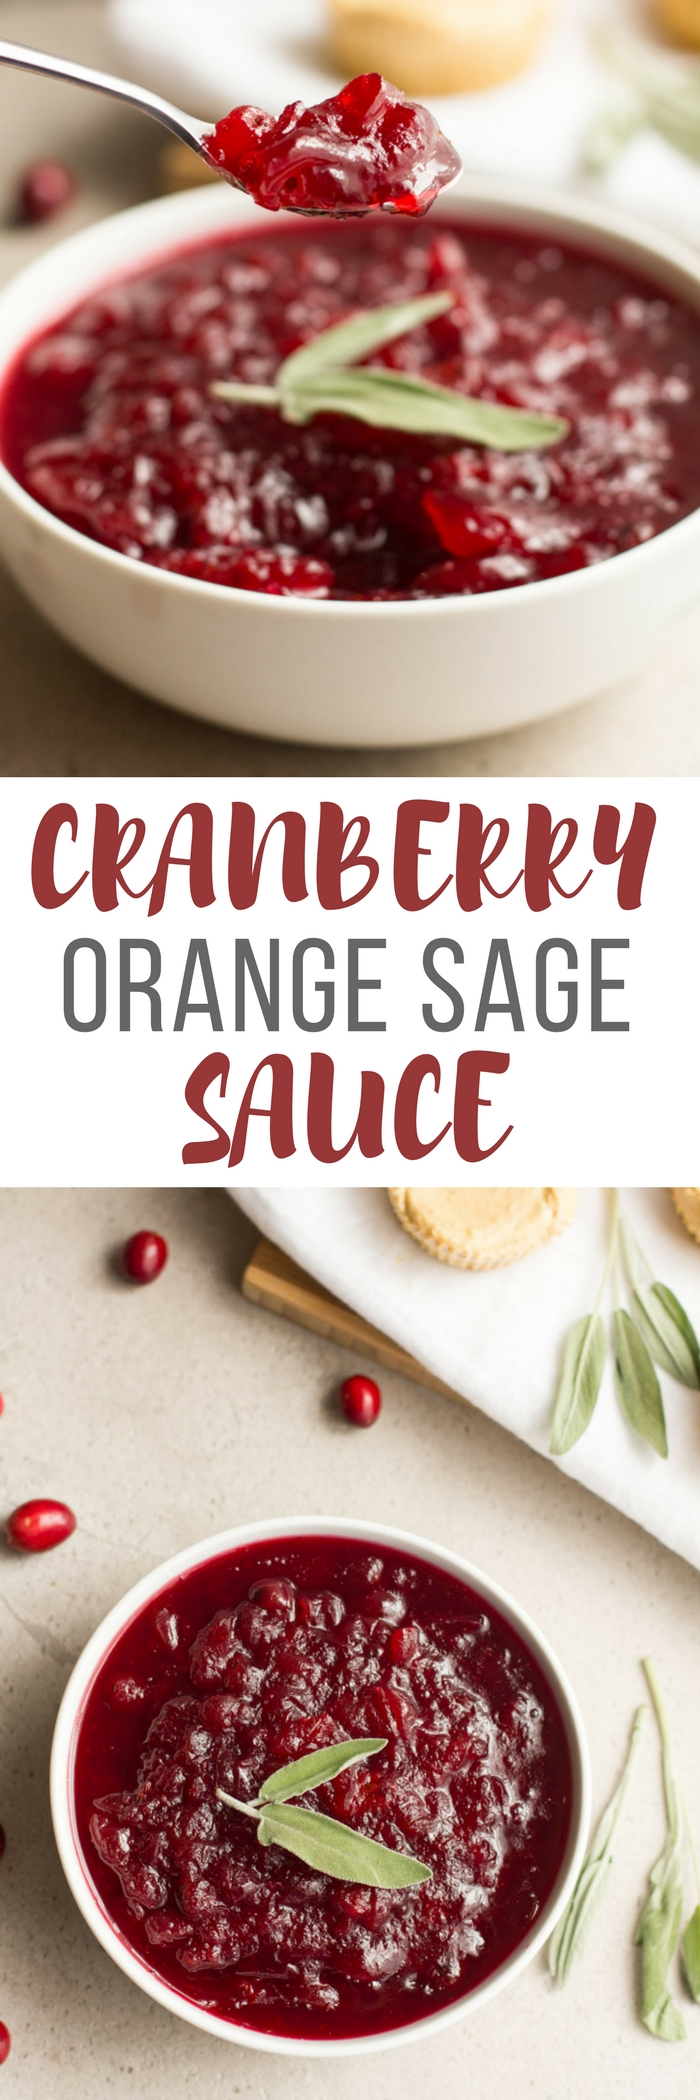 Cranberry Orange Sage Sauce is an easy and fast recipe for homemade cranberry sauce. Make Thanksgiving meal prep easy by making this ahead.